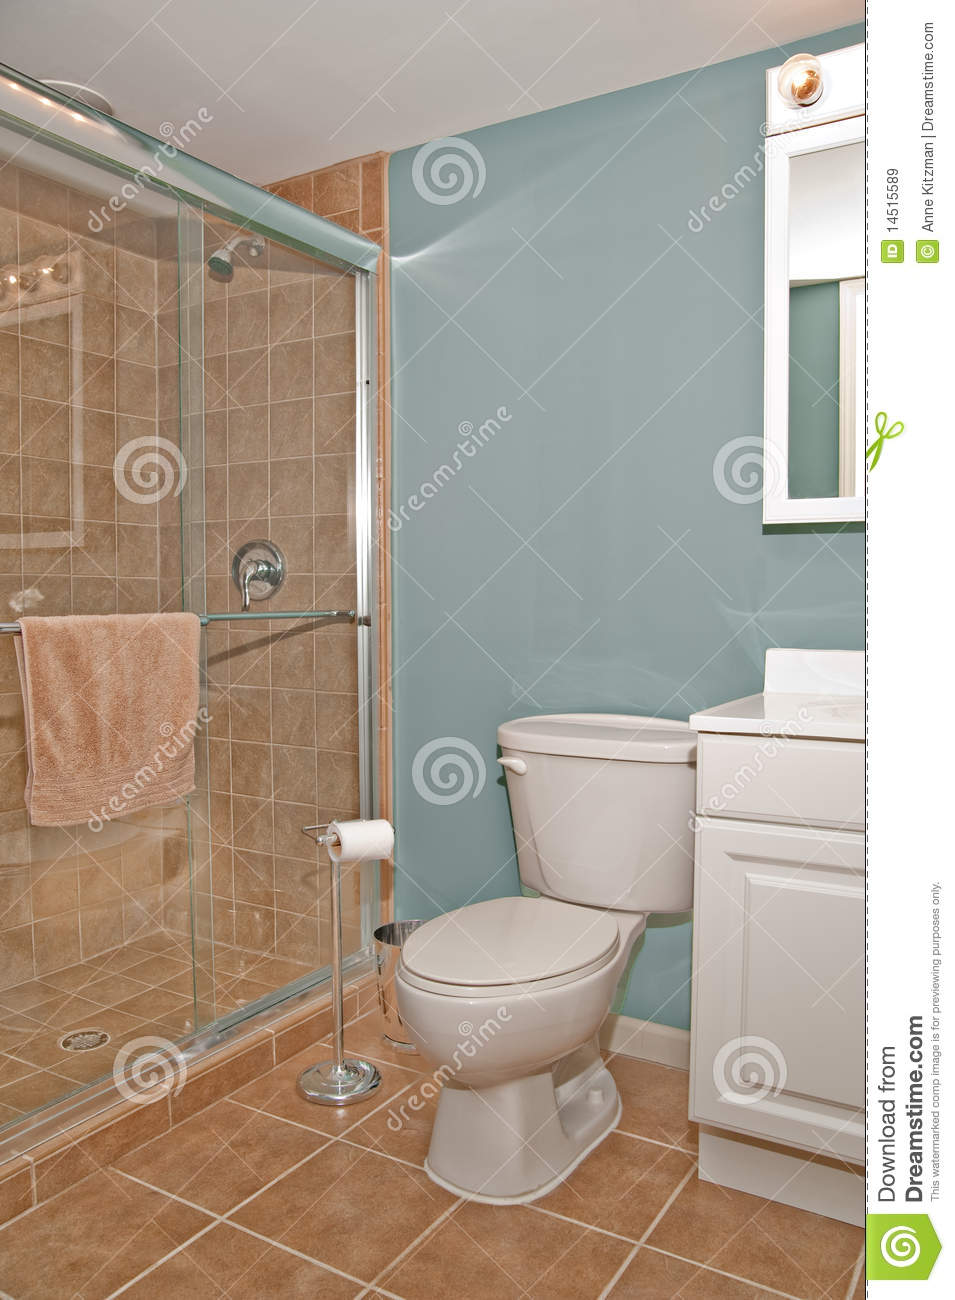 Image Result For Walk In Shower Prices